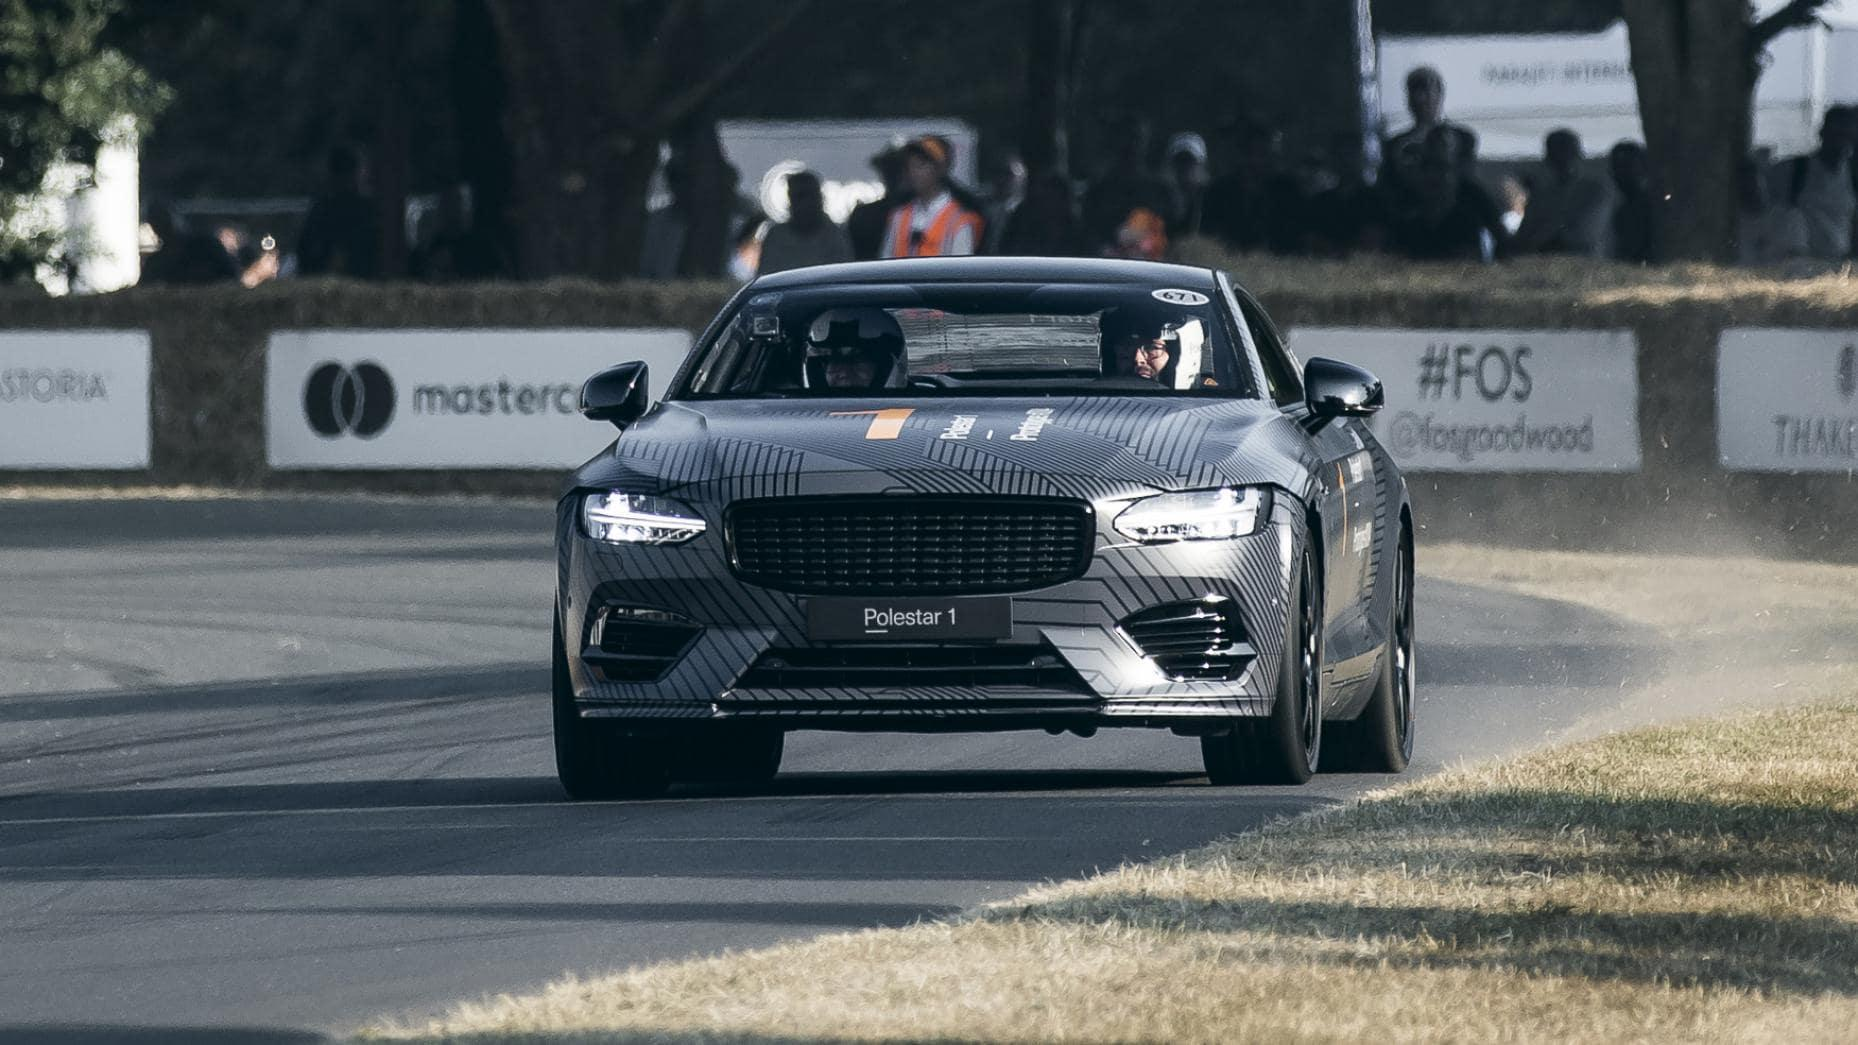 Polestar 1 Goodwood FOS